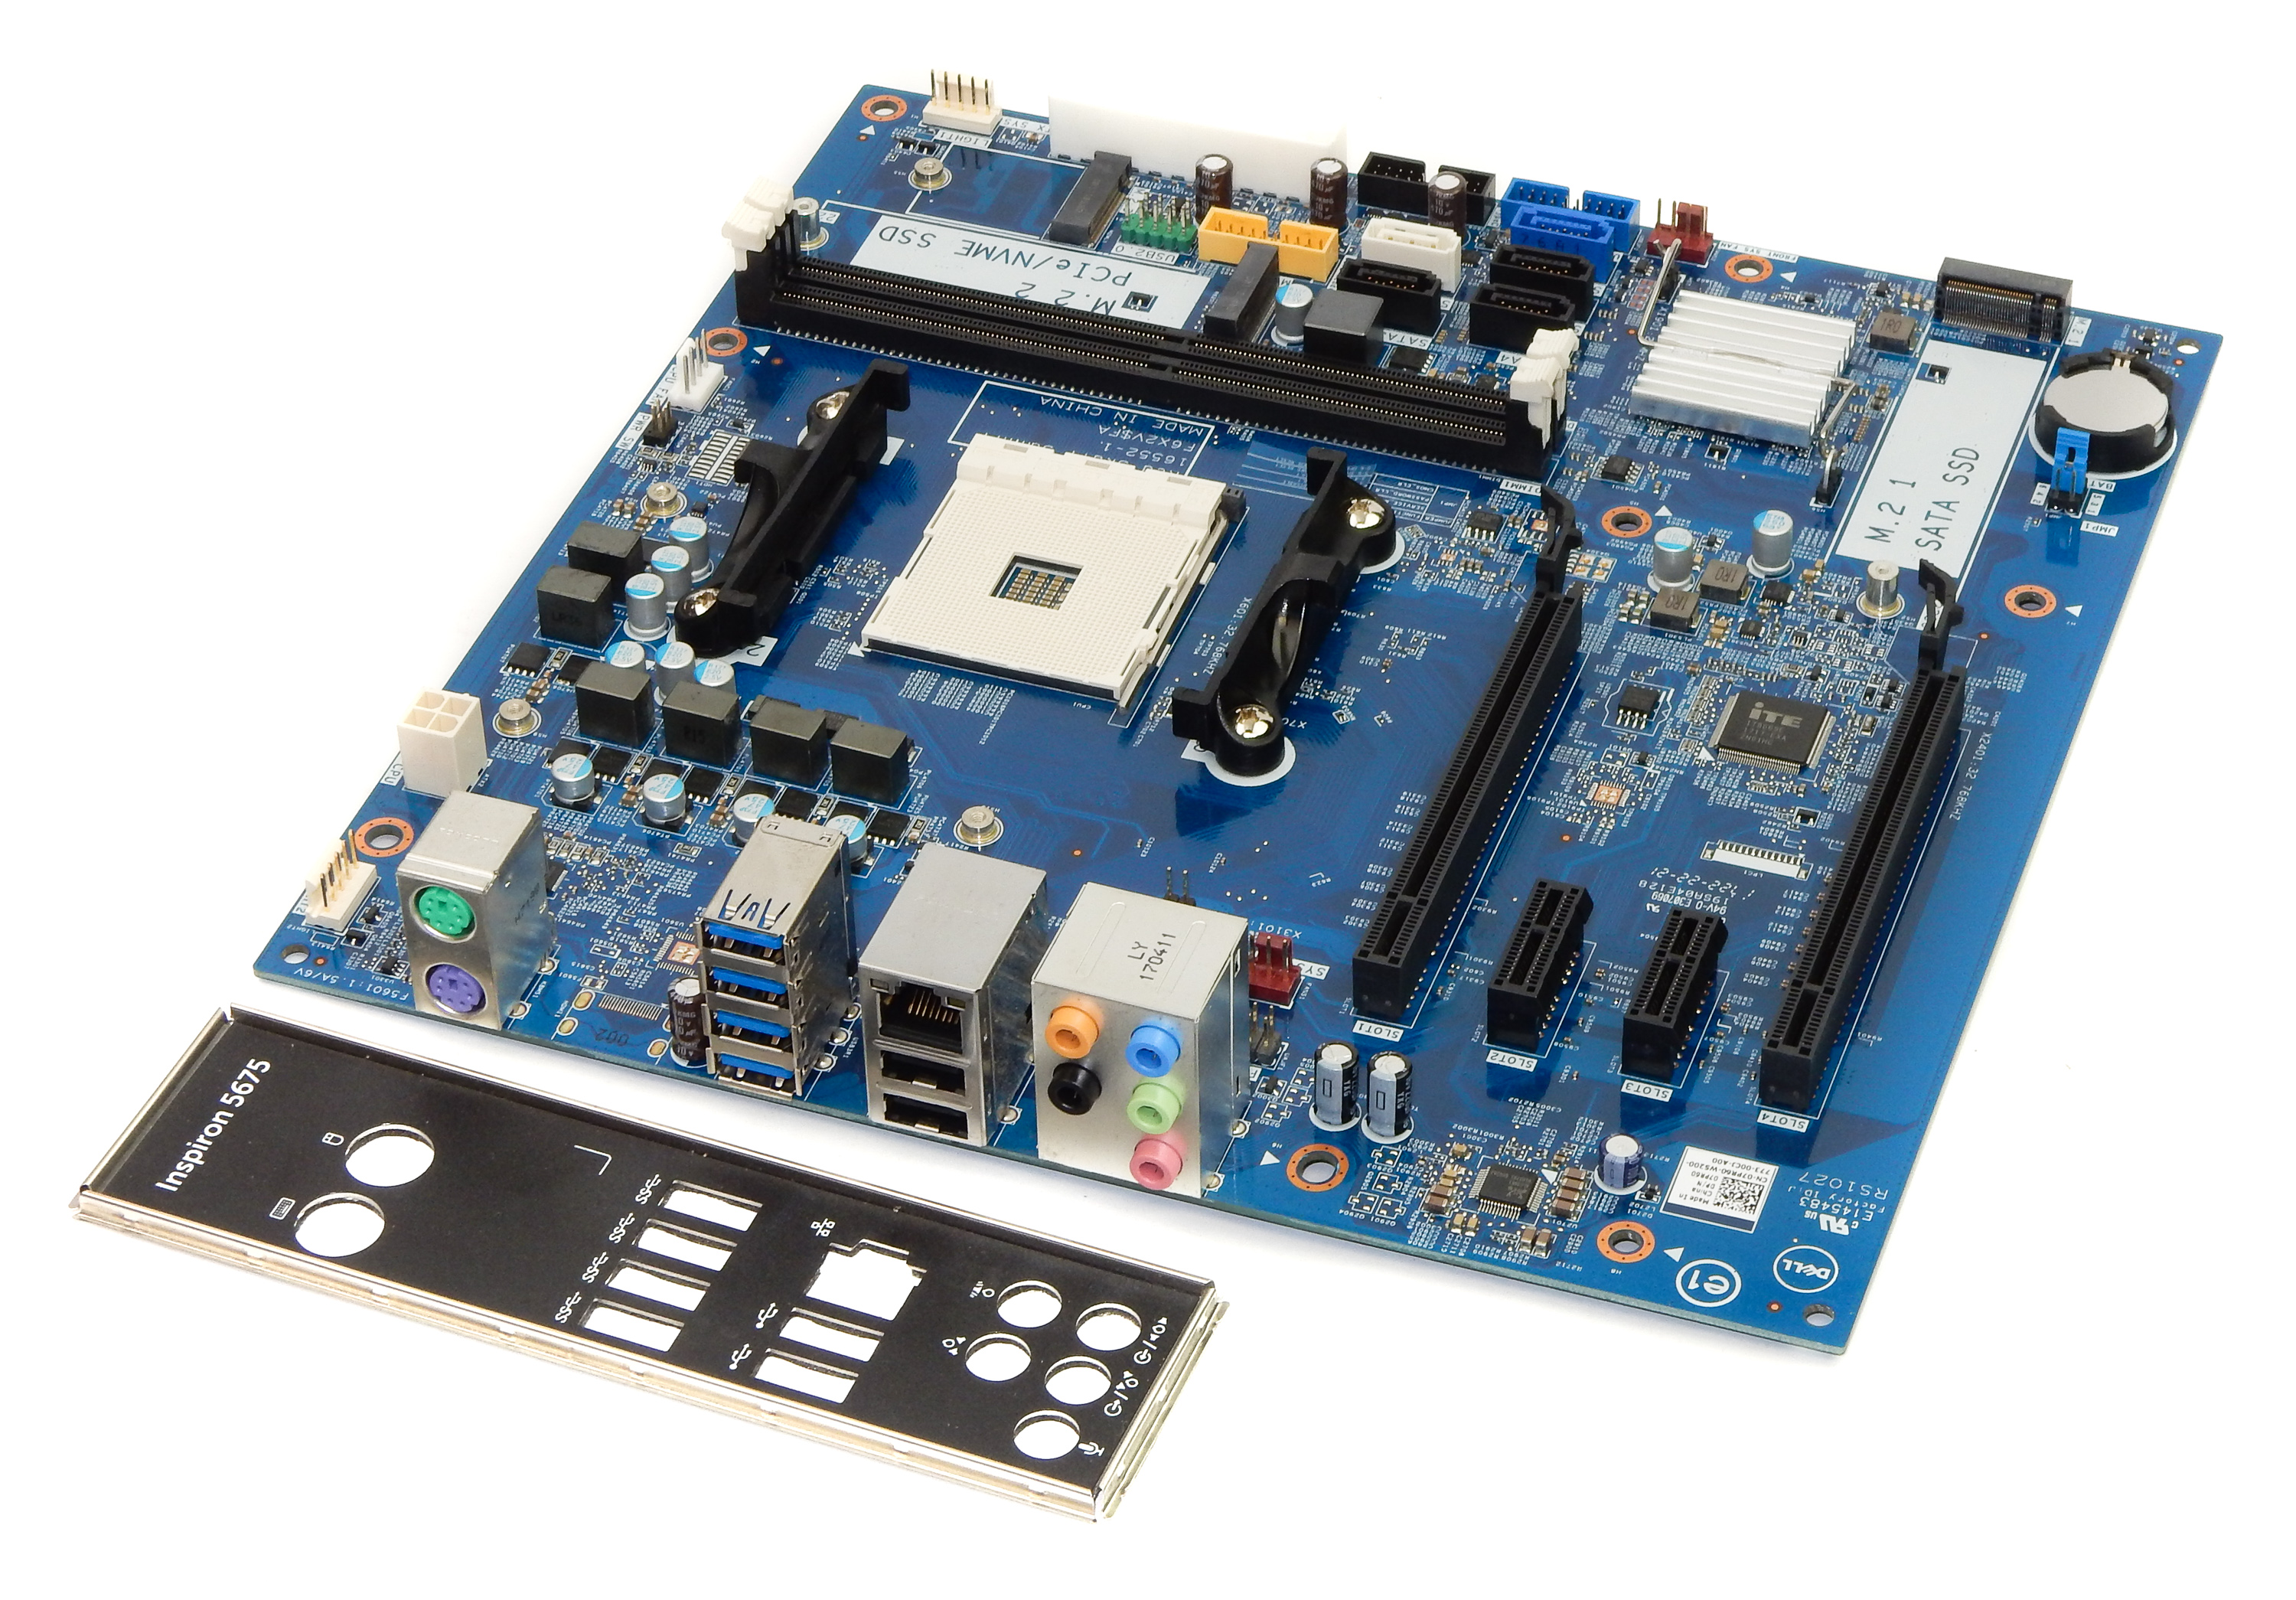 Dell Inspiron 5675 Motherboard - Dell Photos and Images 2018